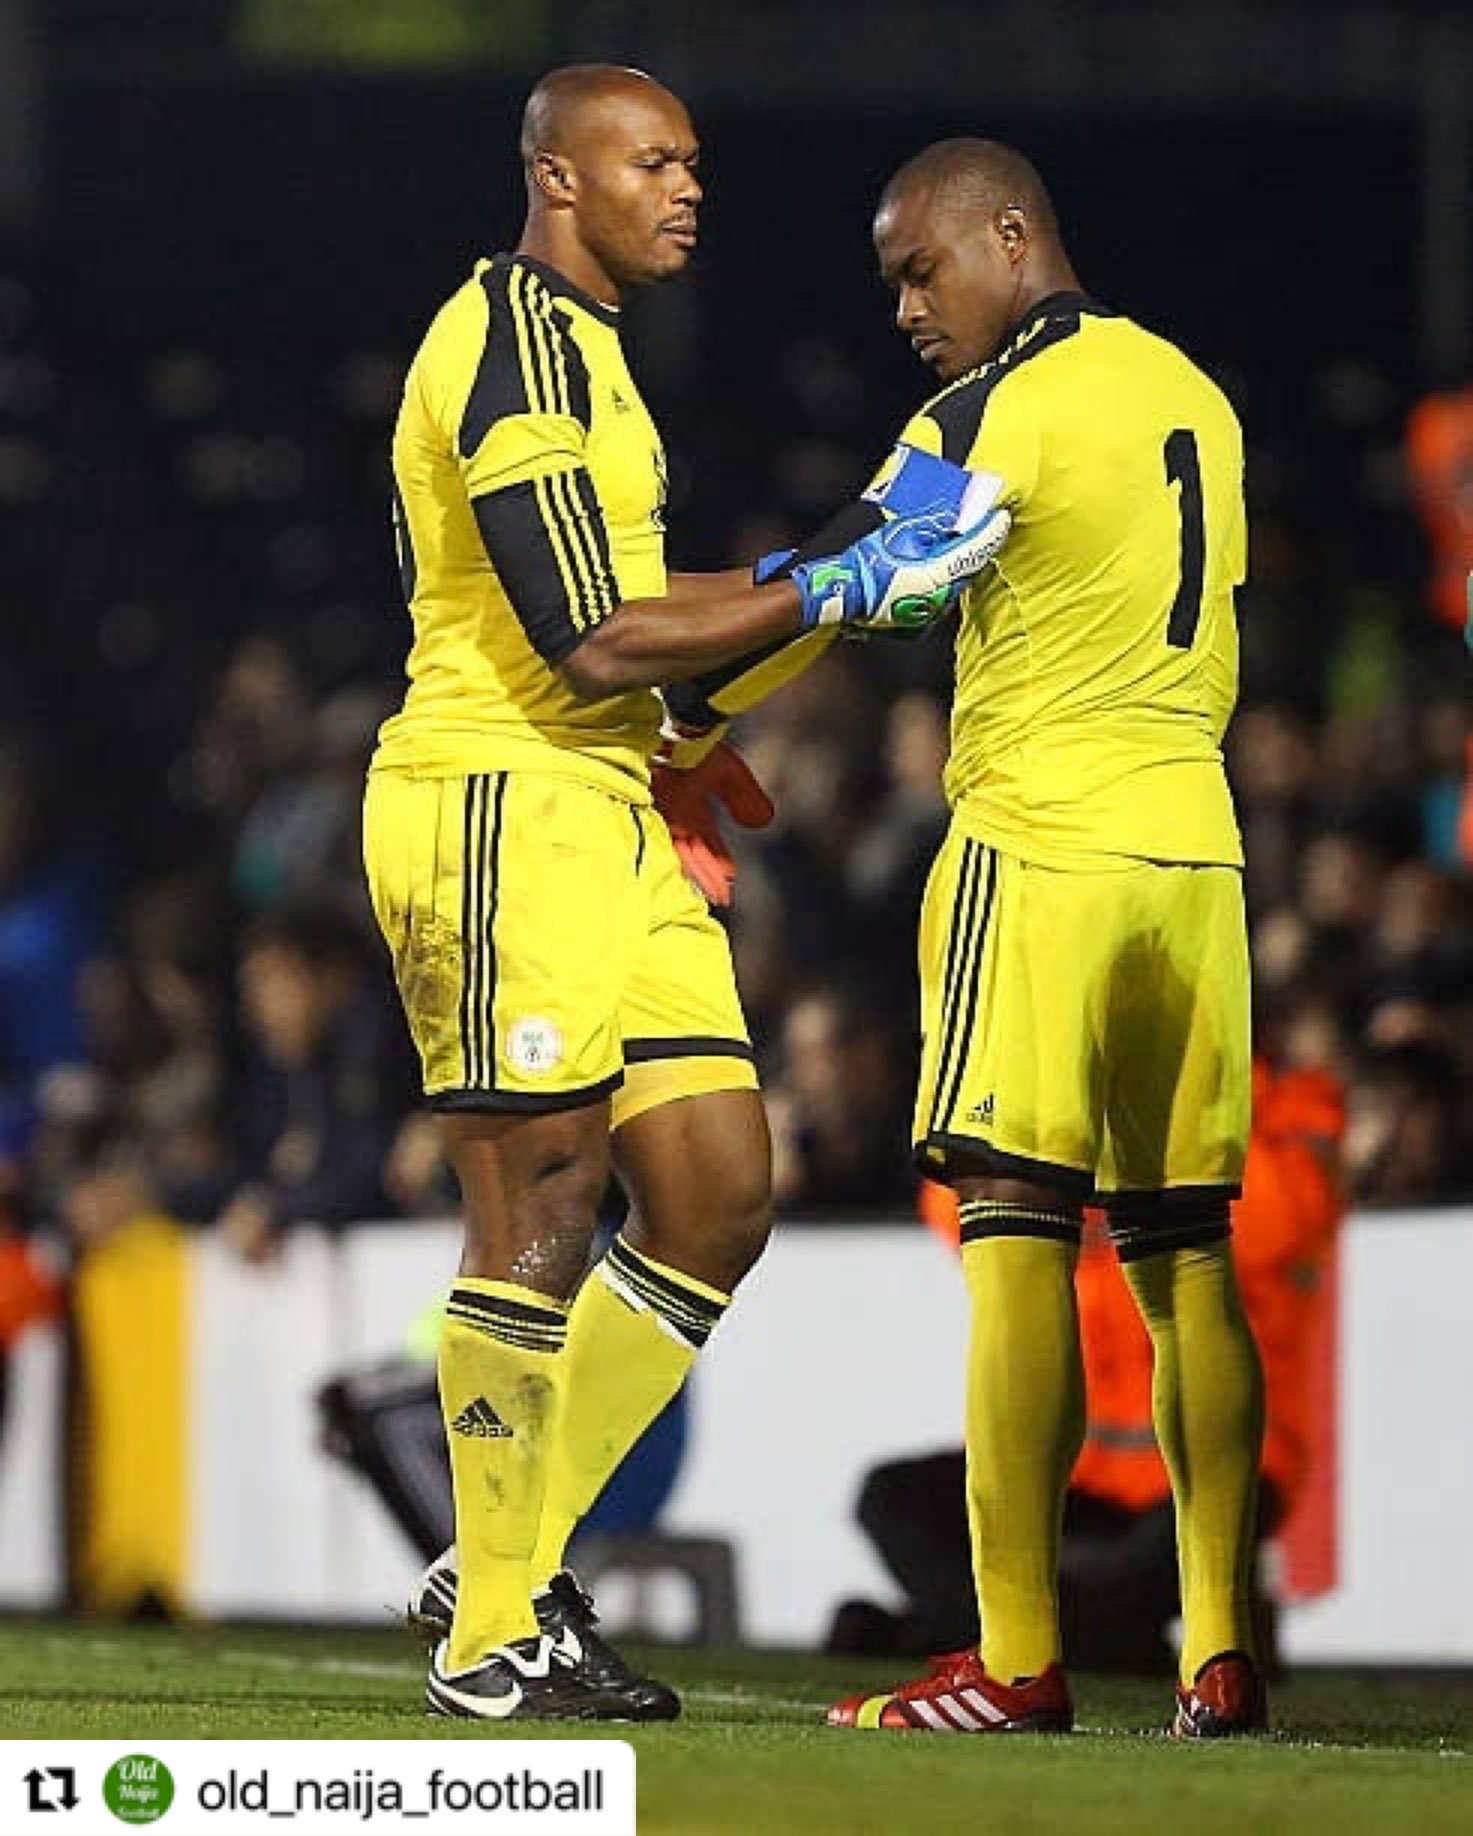 Enyeama: Ejide Contributed To Me Being One Of The Best Goalkeepers In The World